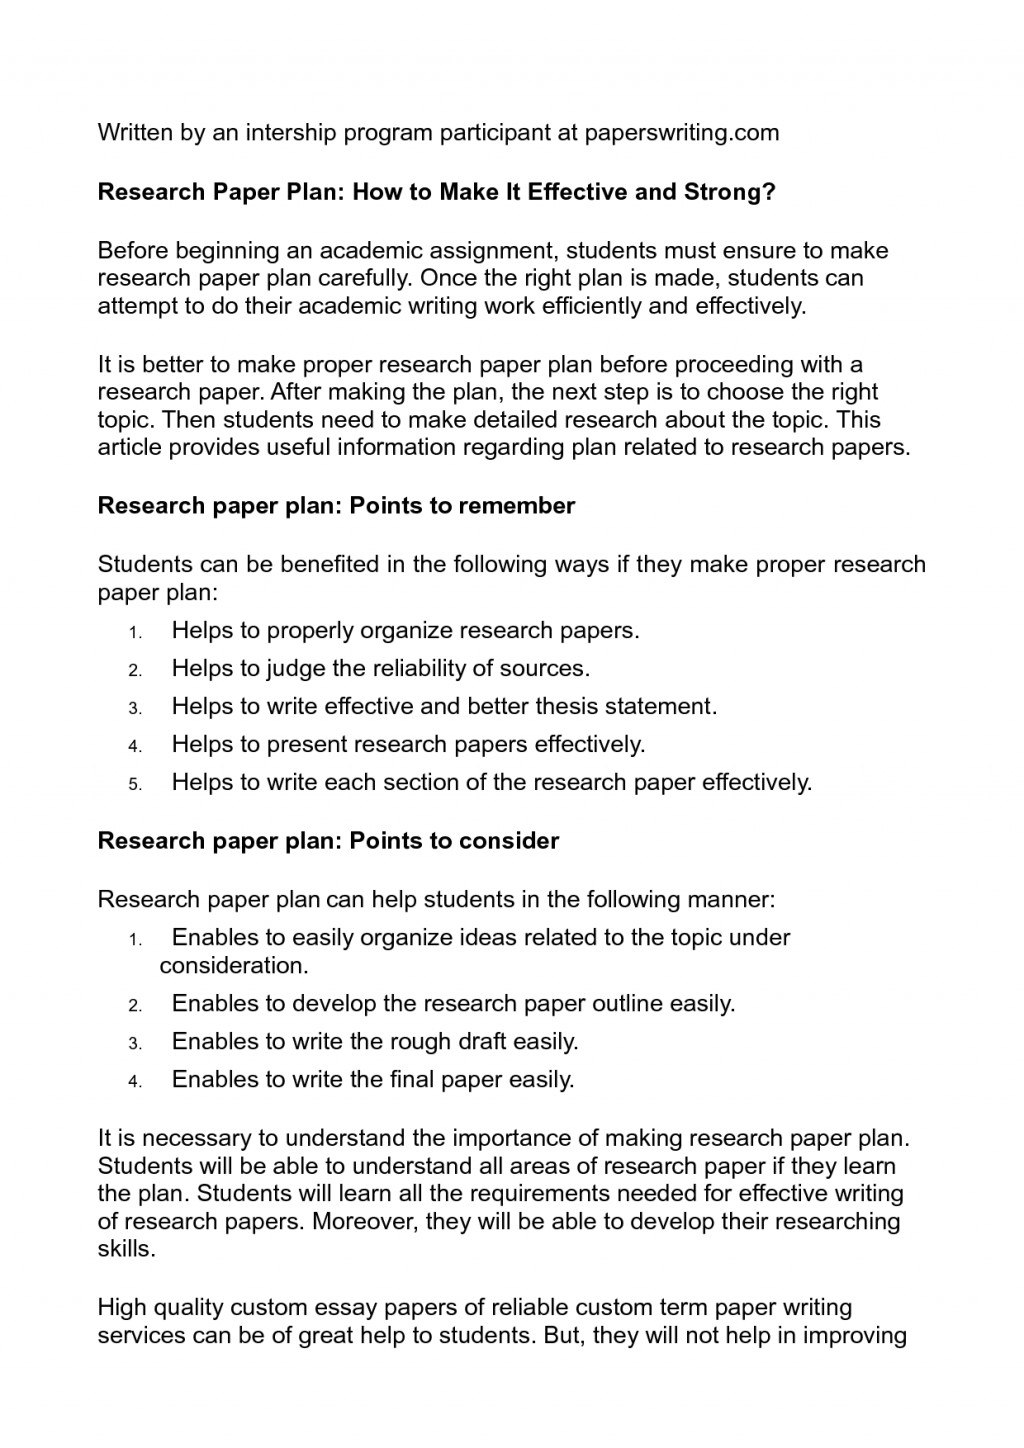 008 Xqj3iznhwu Essay Example How To Write Excellent A Research Proposal Paper In Apa Format Mla Large